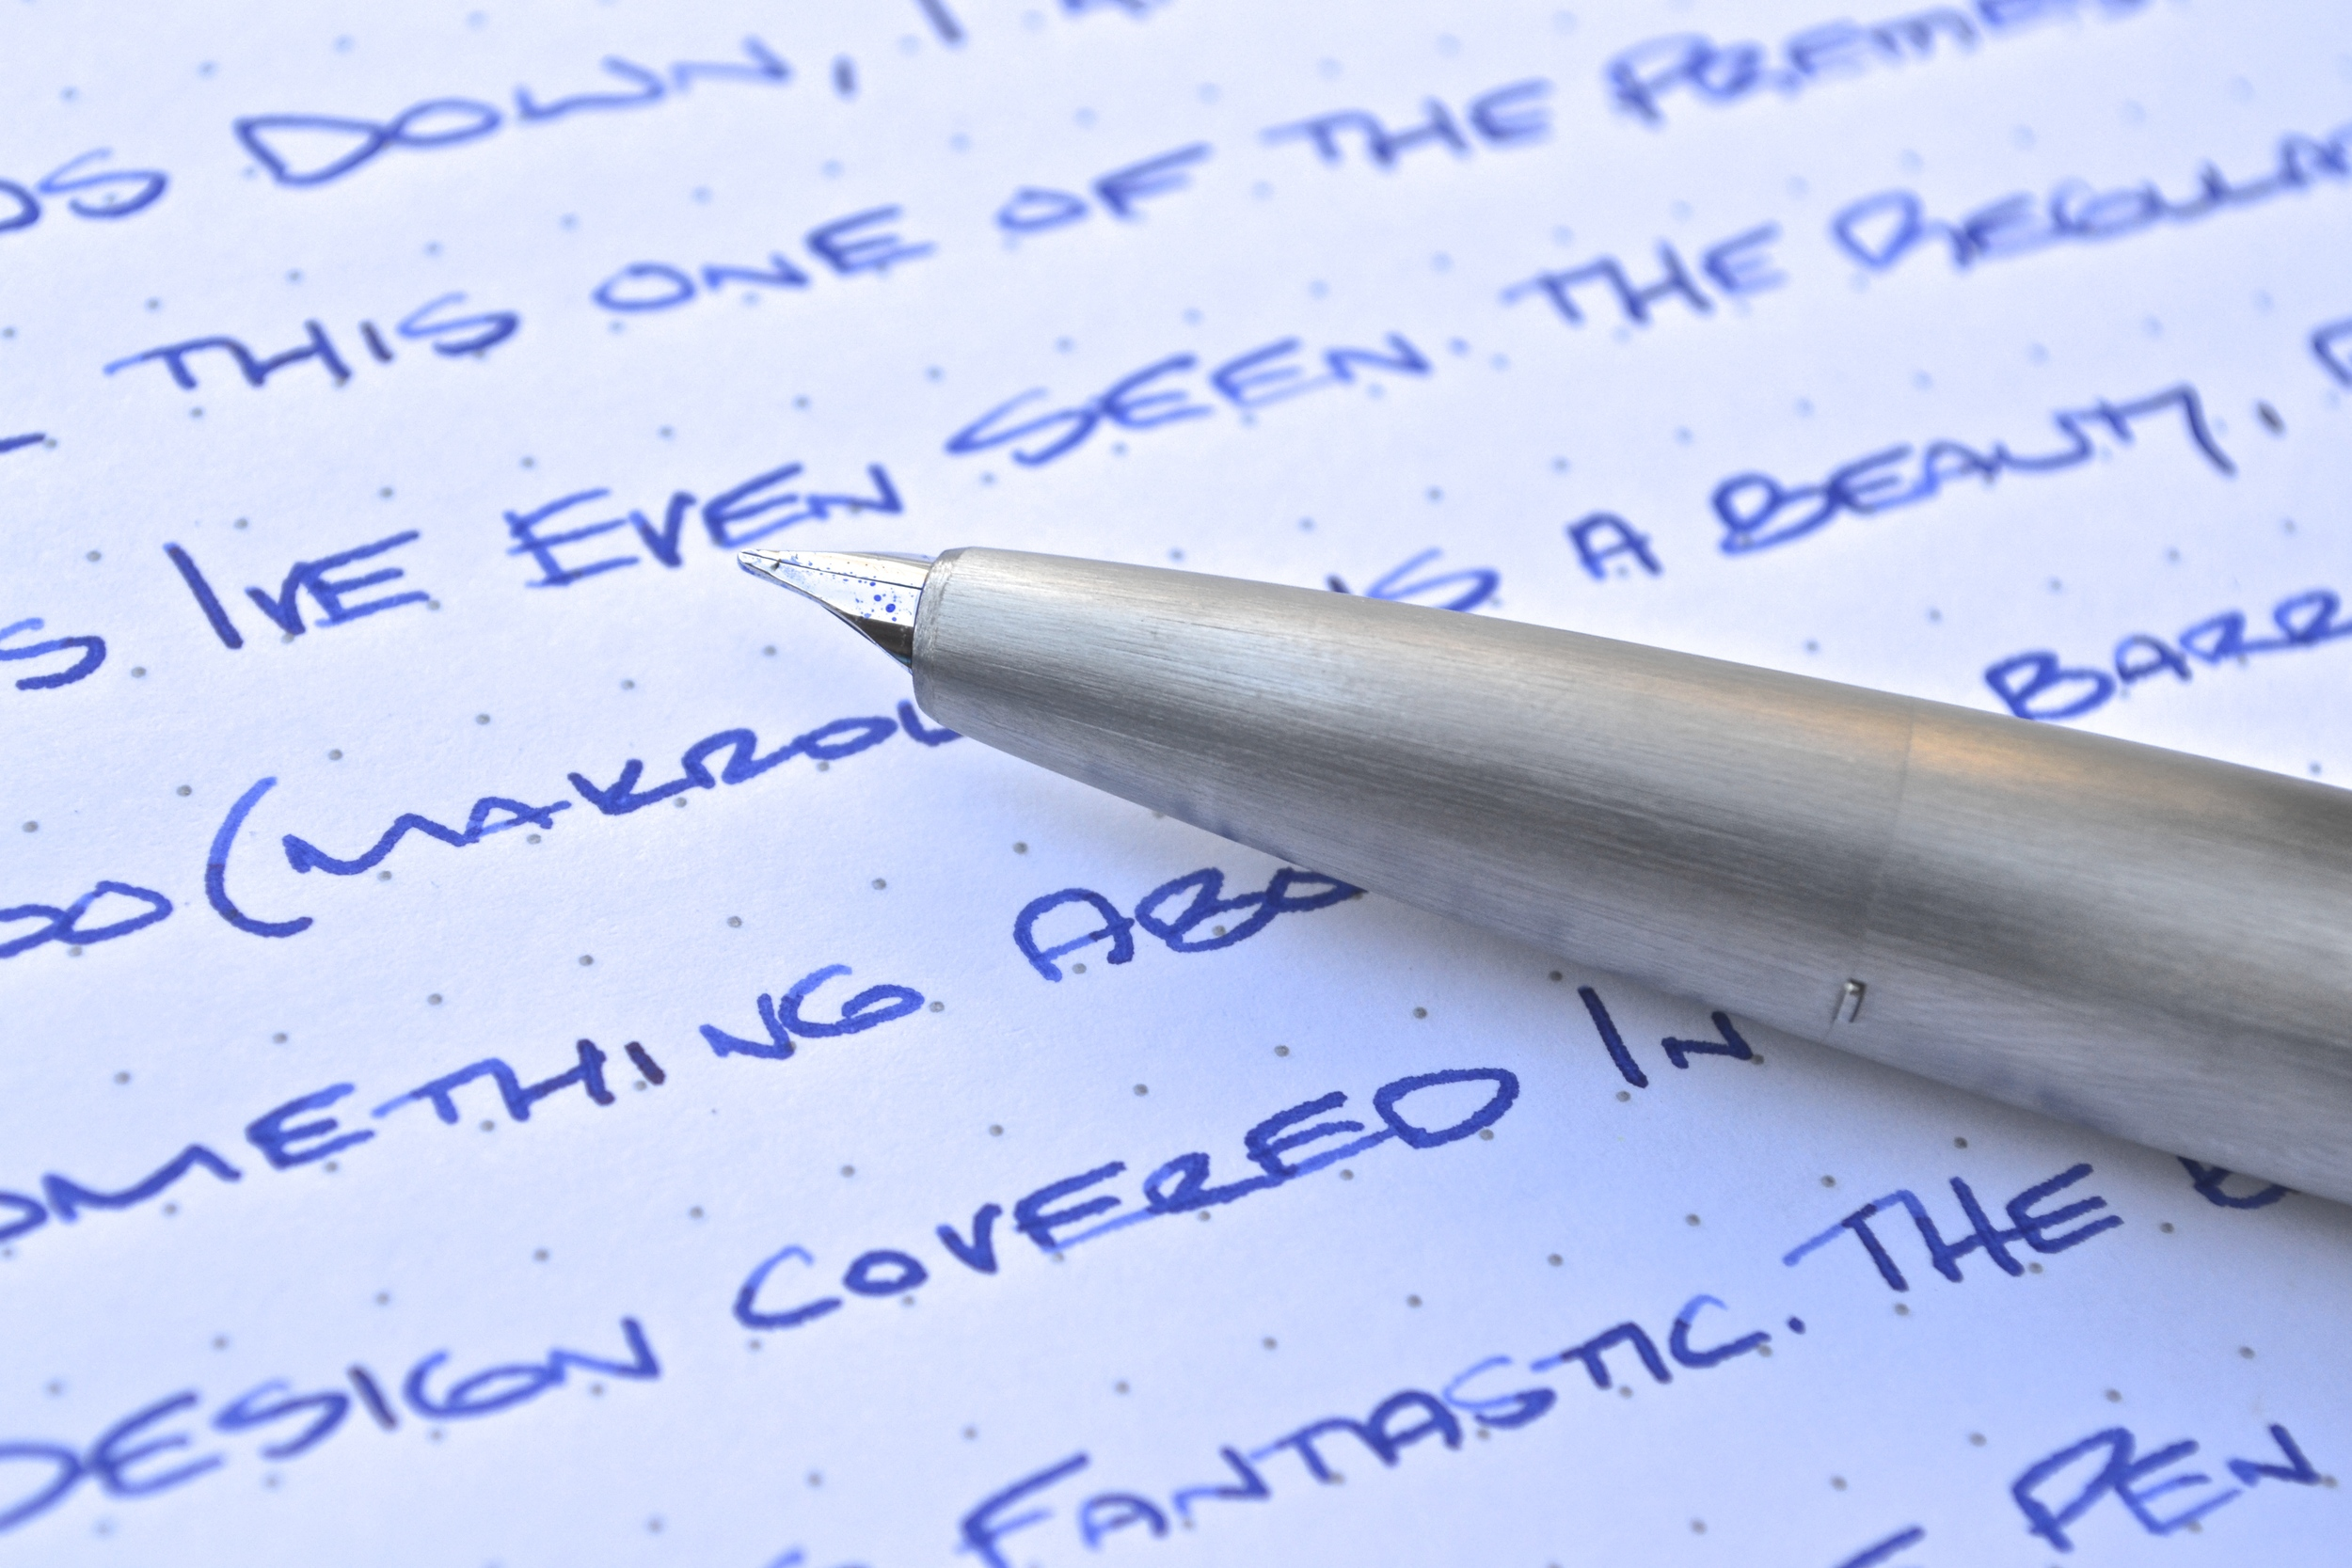 Stainless Steel Lamy 2000 Fountain Pen Review